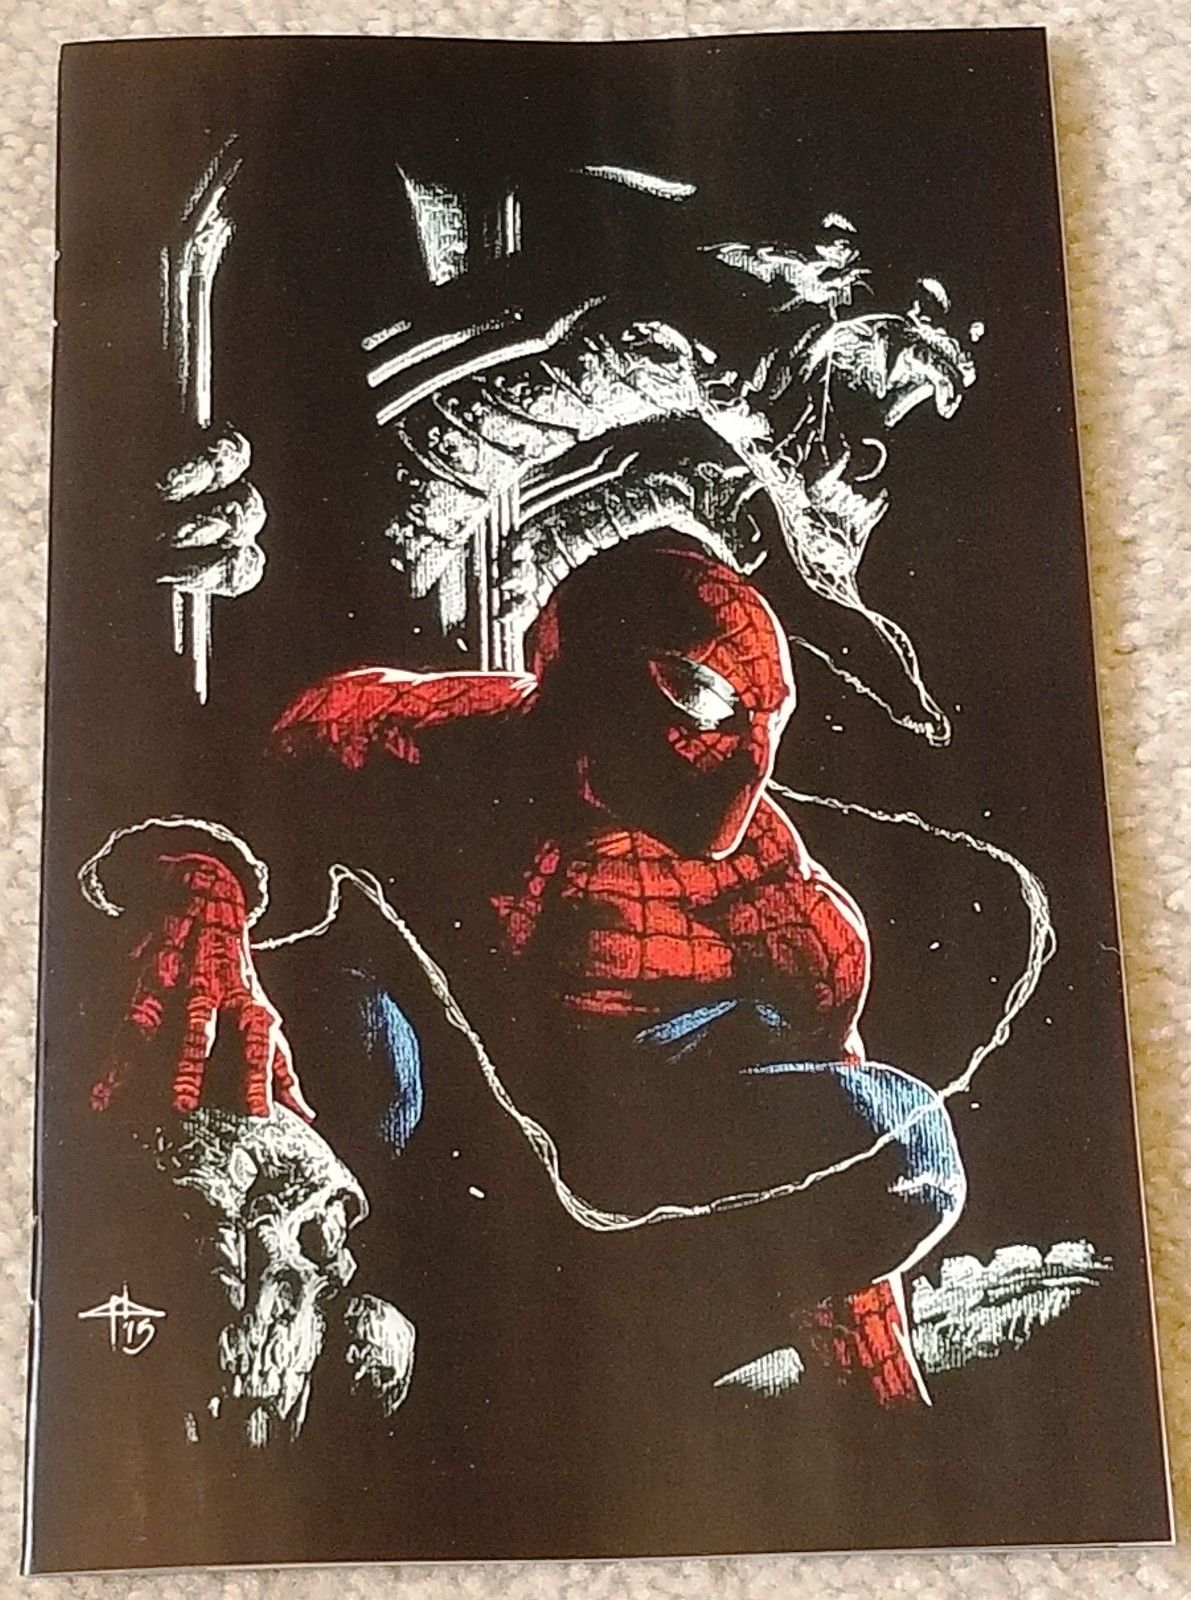 AMAZING SPIDER-MAN #801 GABRIELLE DELL OTTO VIRGIN EXCLUSIVE VARIANT